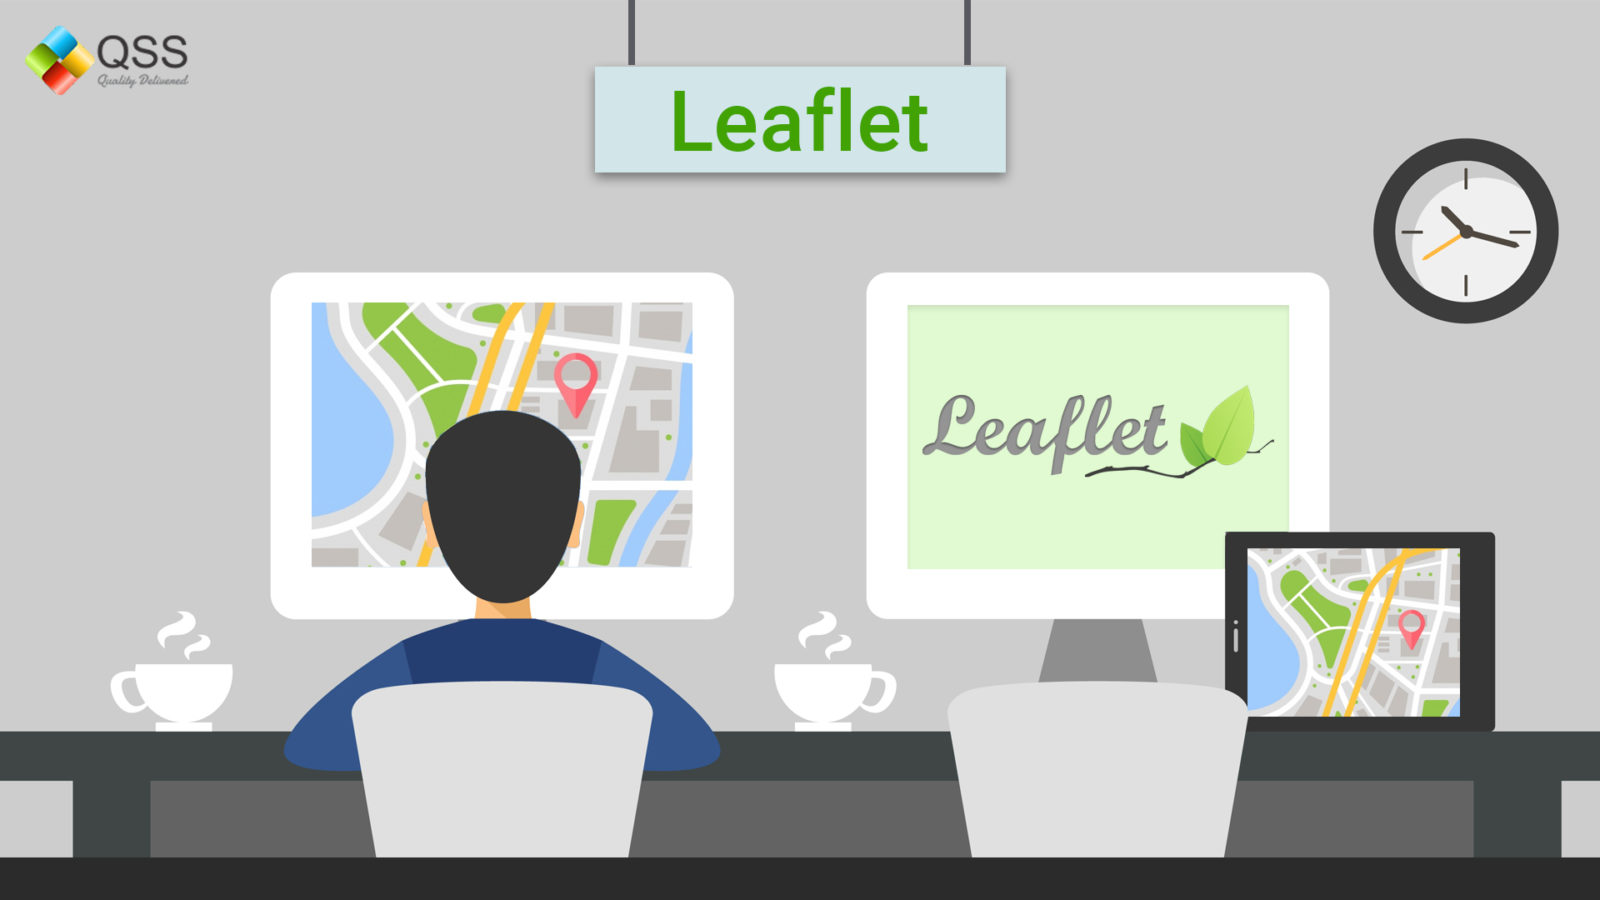 How to use Google Maps in Leaflet? -